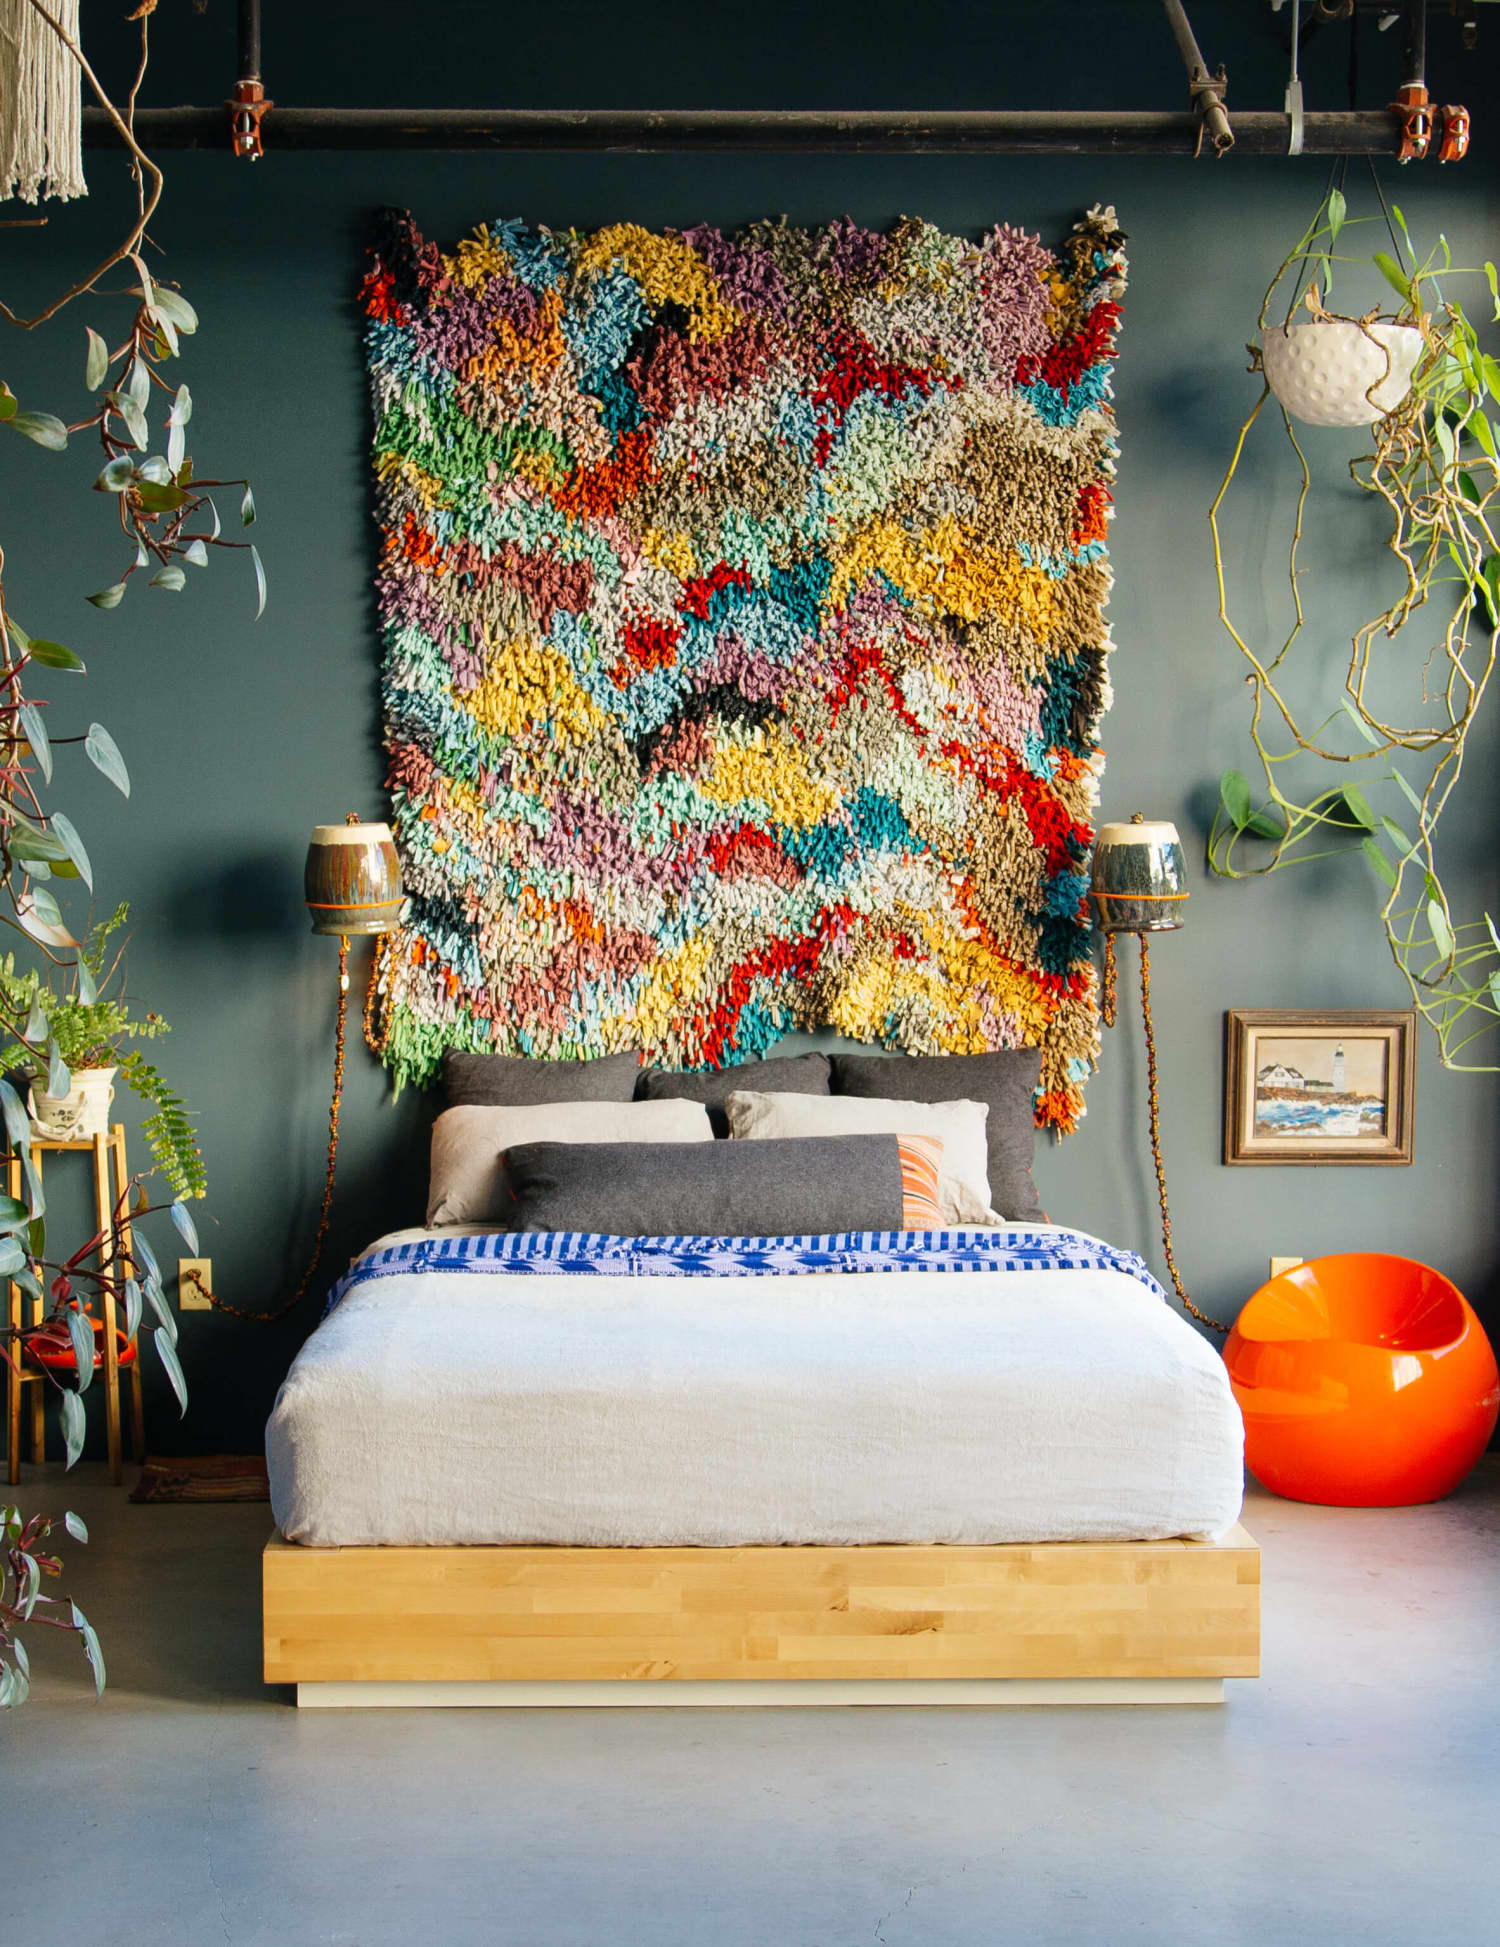 A Totally Unexpected 3-in-1 Design Solution for Blank Walls